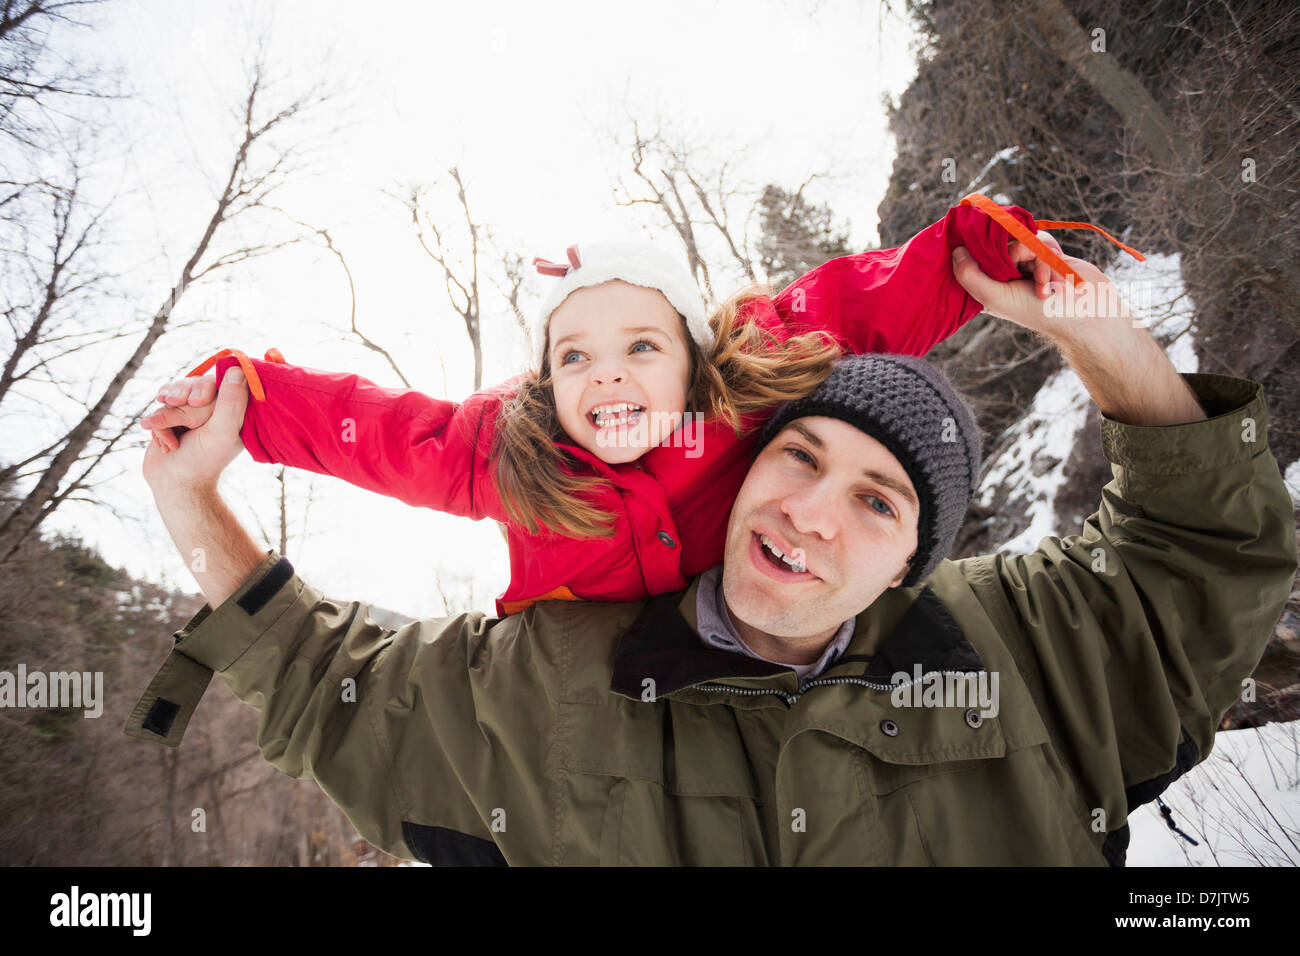 USA, Utah, Highland, Portrait of young man carrying girl (2-3) on shoulders - Stock Image